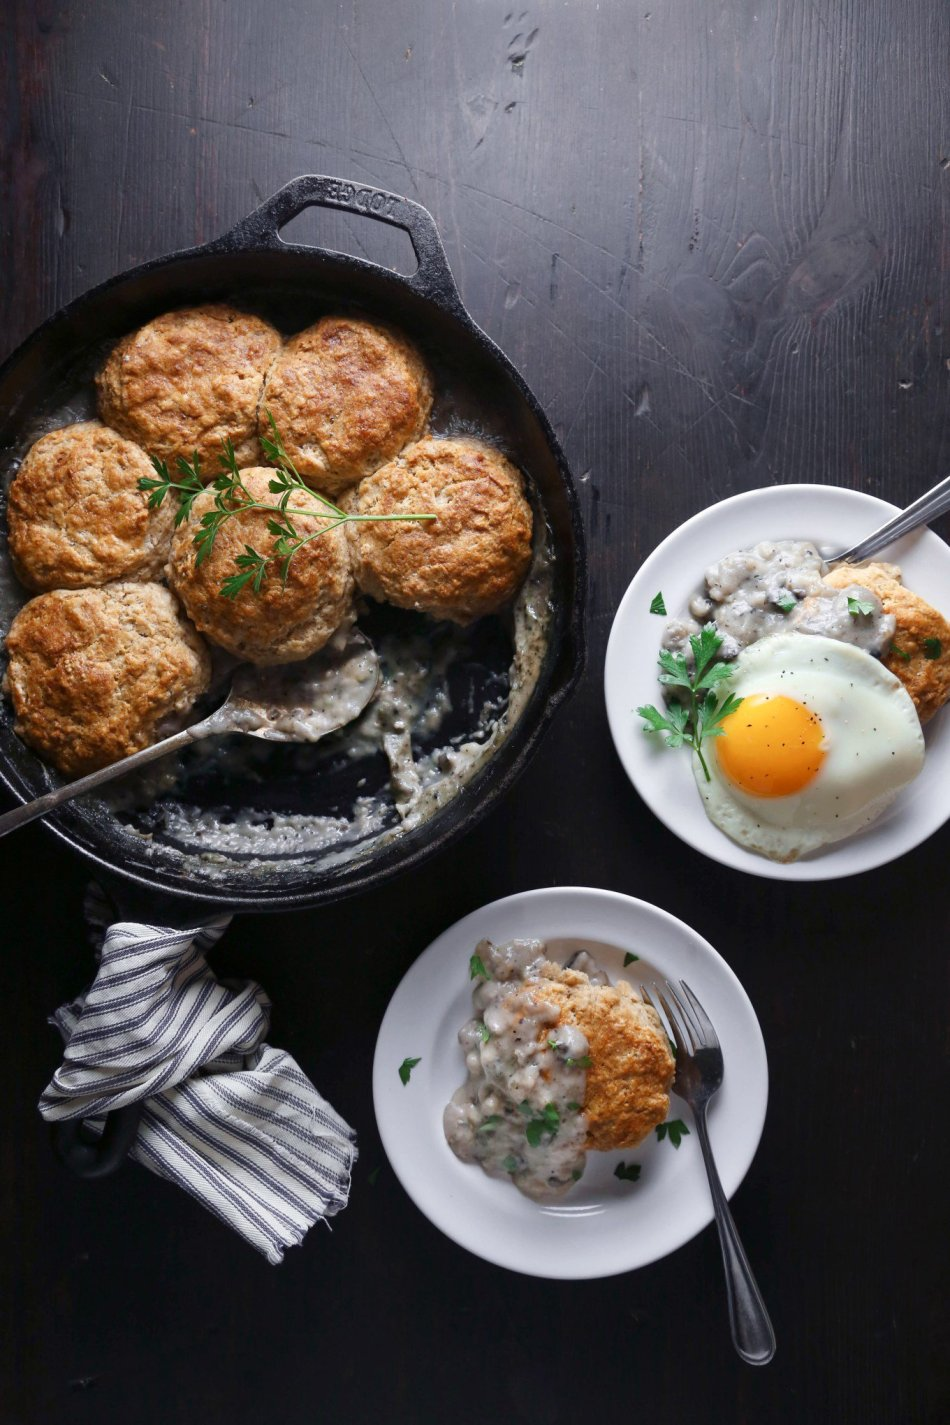 Biscuits and Gravy Breakfast Skillet | Wife Mama Foodie